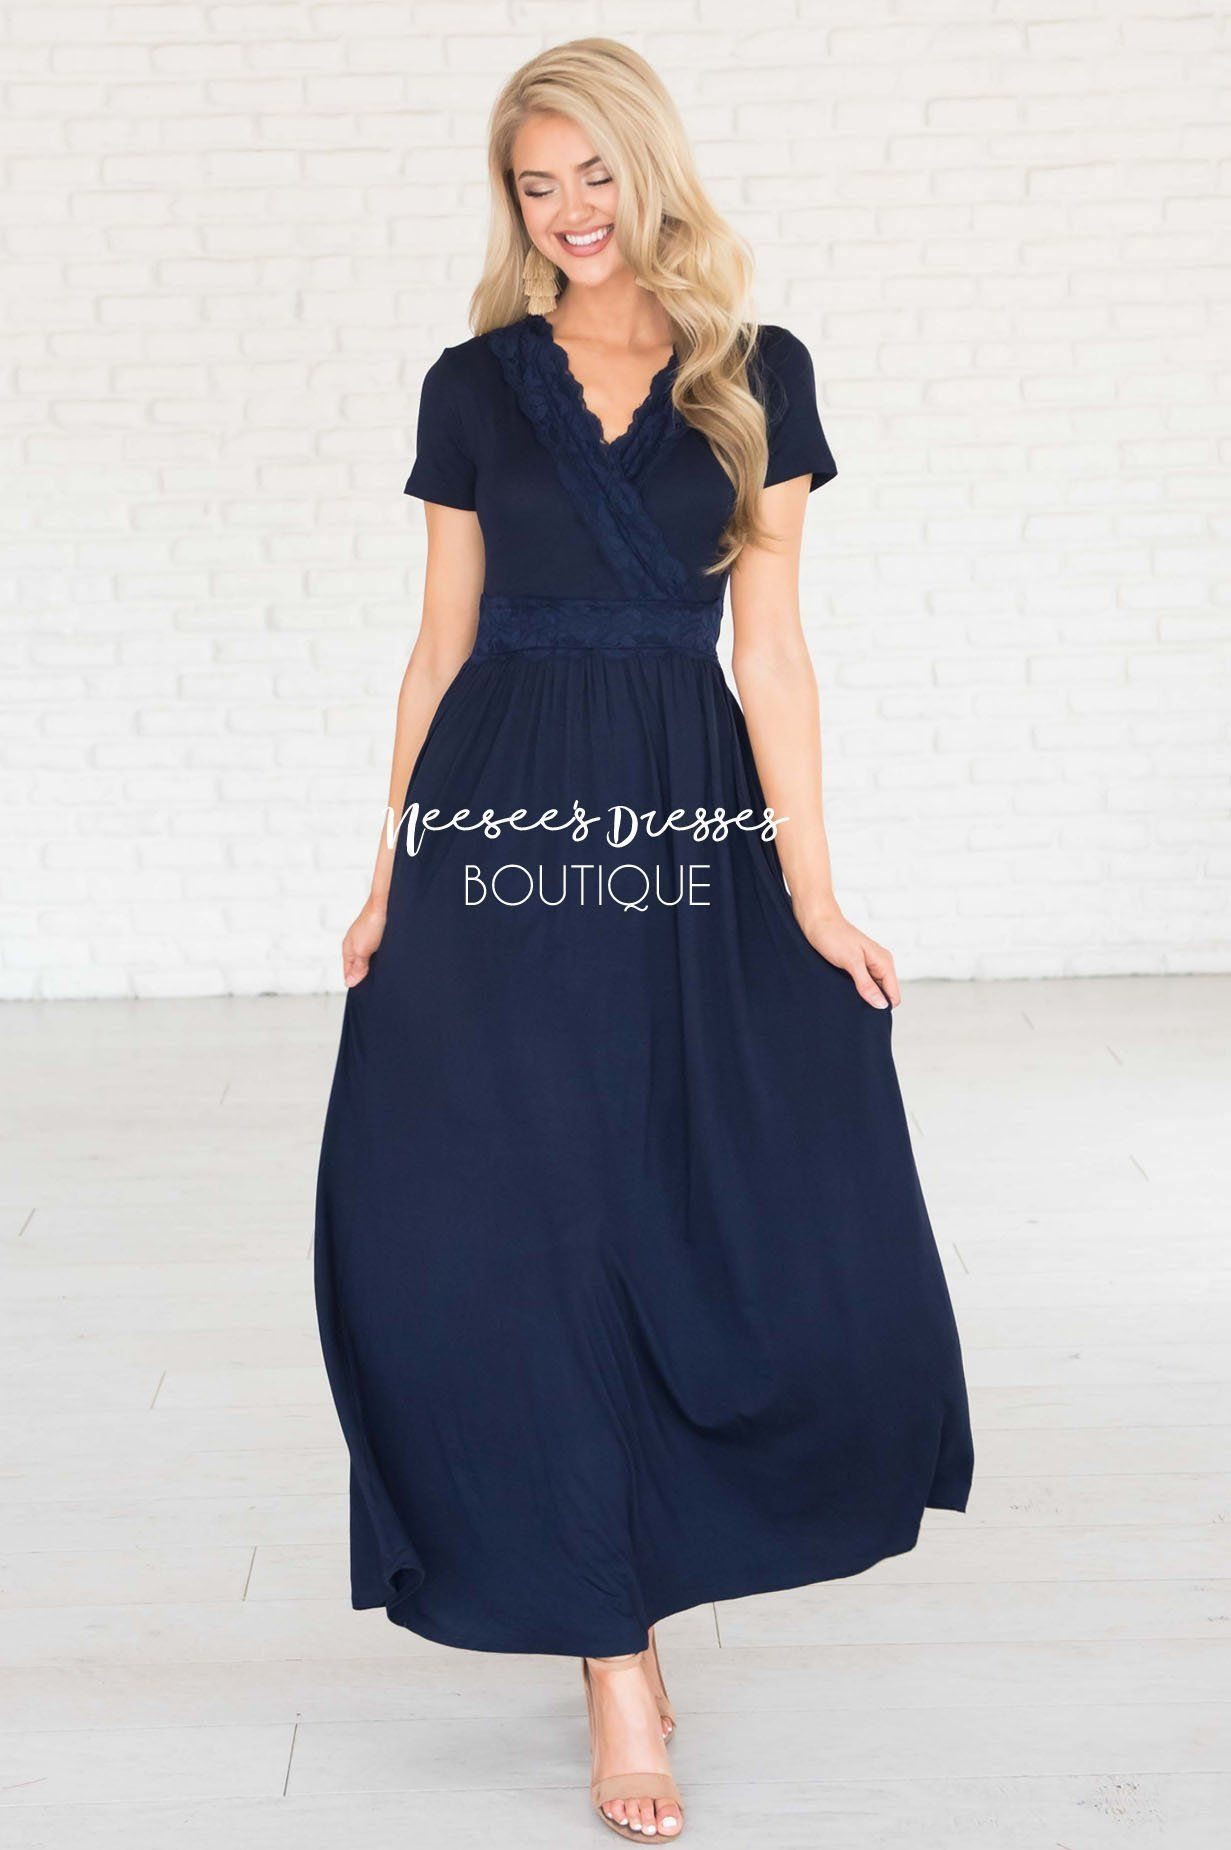 Navy Lace Wrap Maxi Dress Best And Affordable Modest Boutique Cute Modest Dresses And Skirts For Church Neesee Dresses 4th Of July Dresses Modest Dresses [ 1850 x 1231 Pixel ]